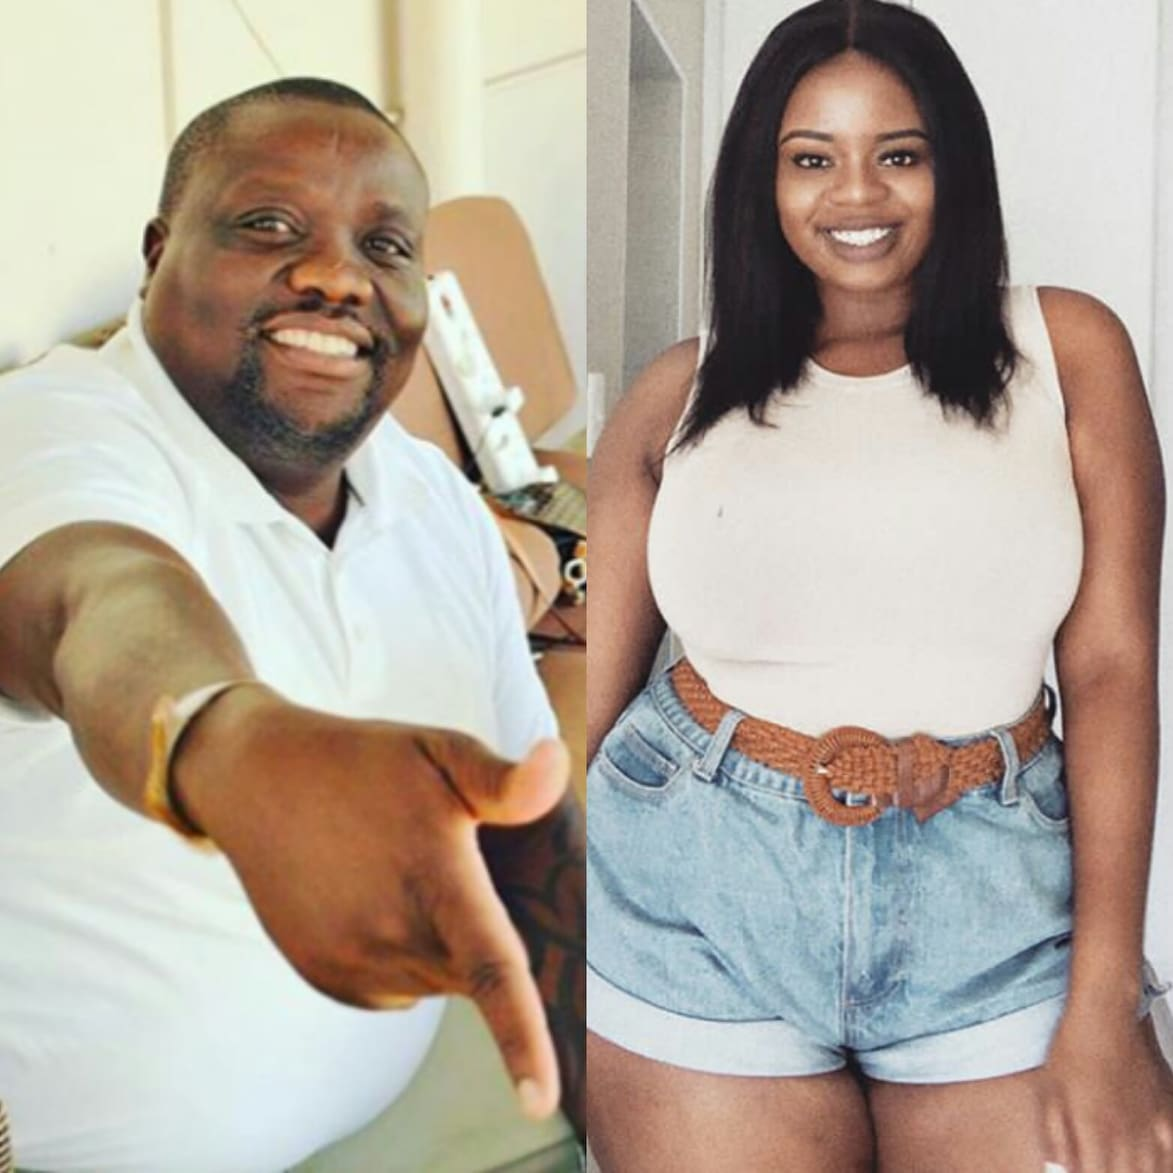 Lvovo Hilariously Shoots His Shot At Thickleeyonce